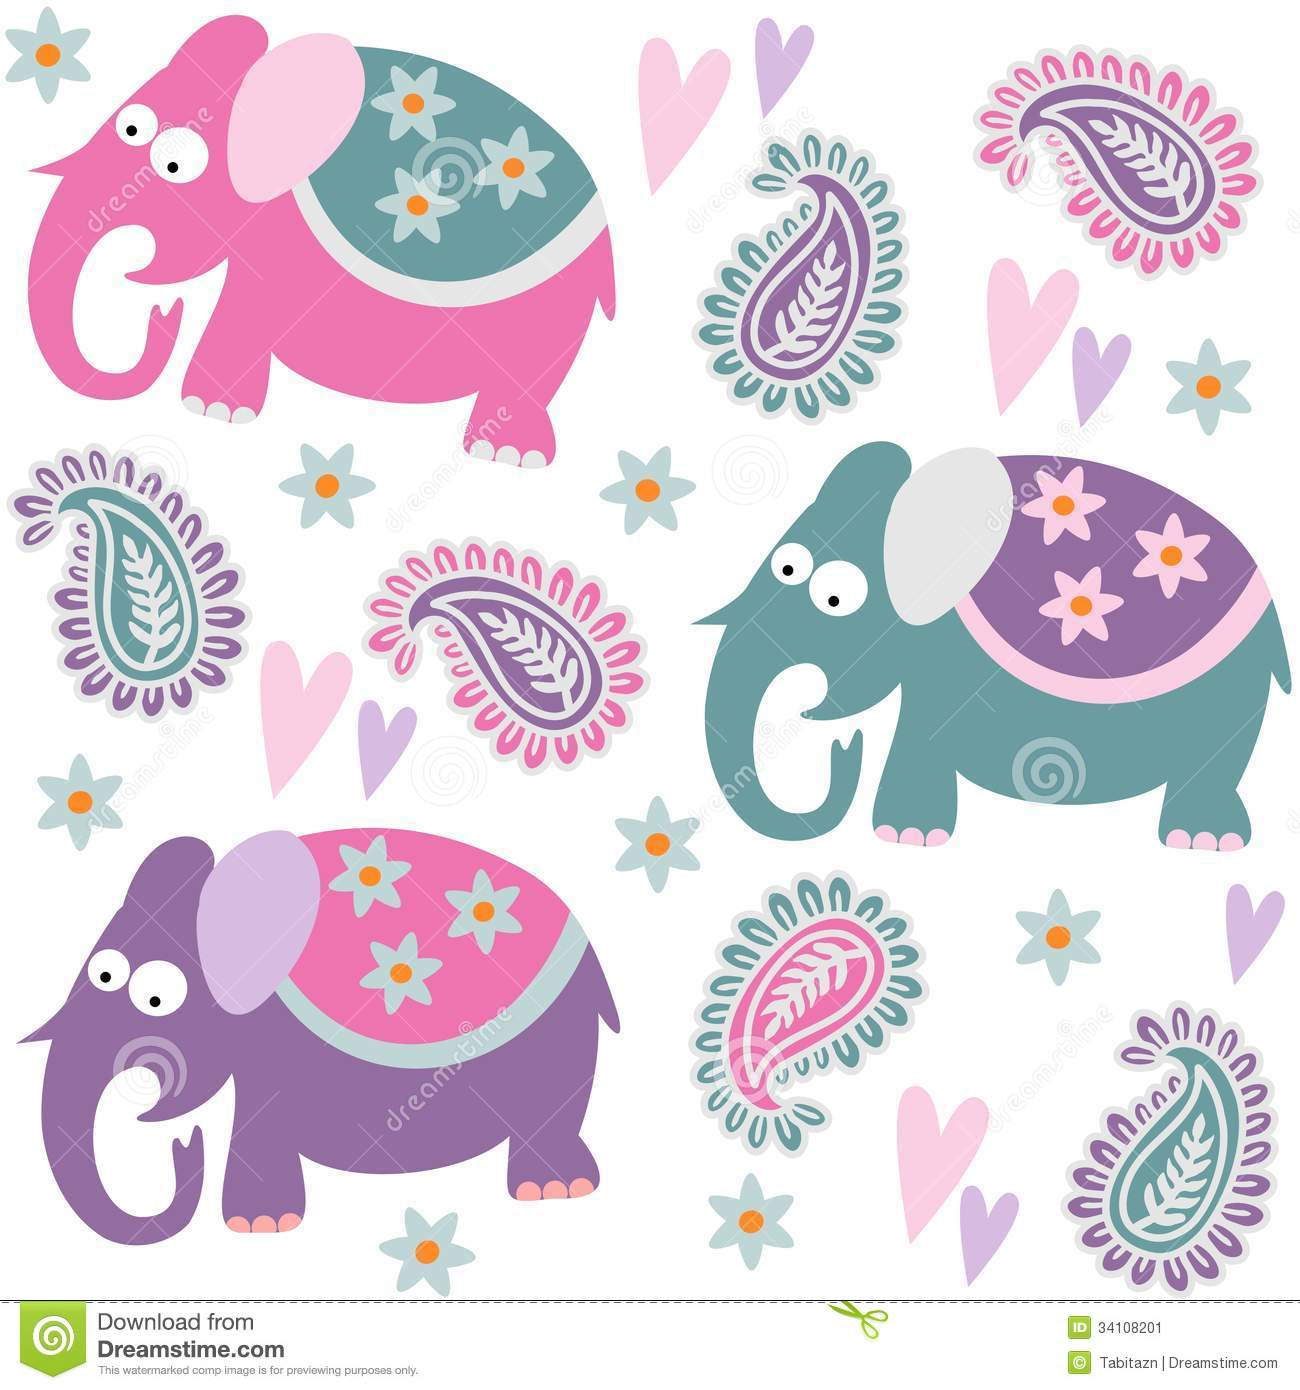 seamless elephant kids pattern wallpaper background with flowers and